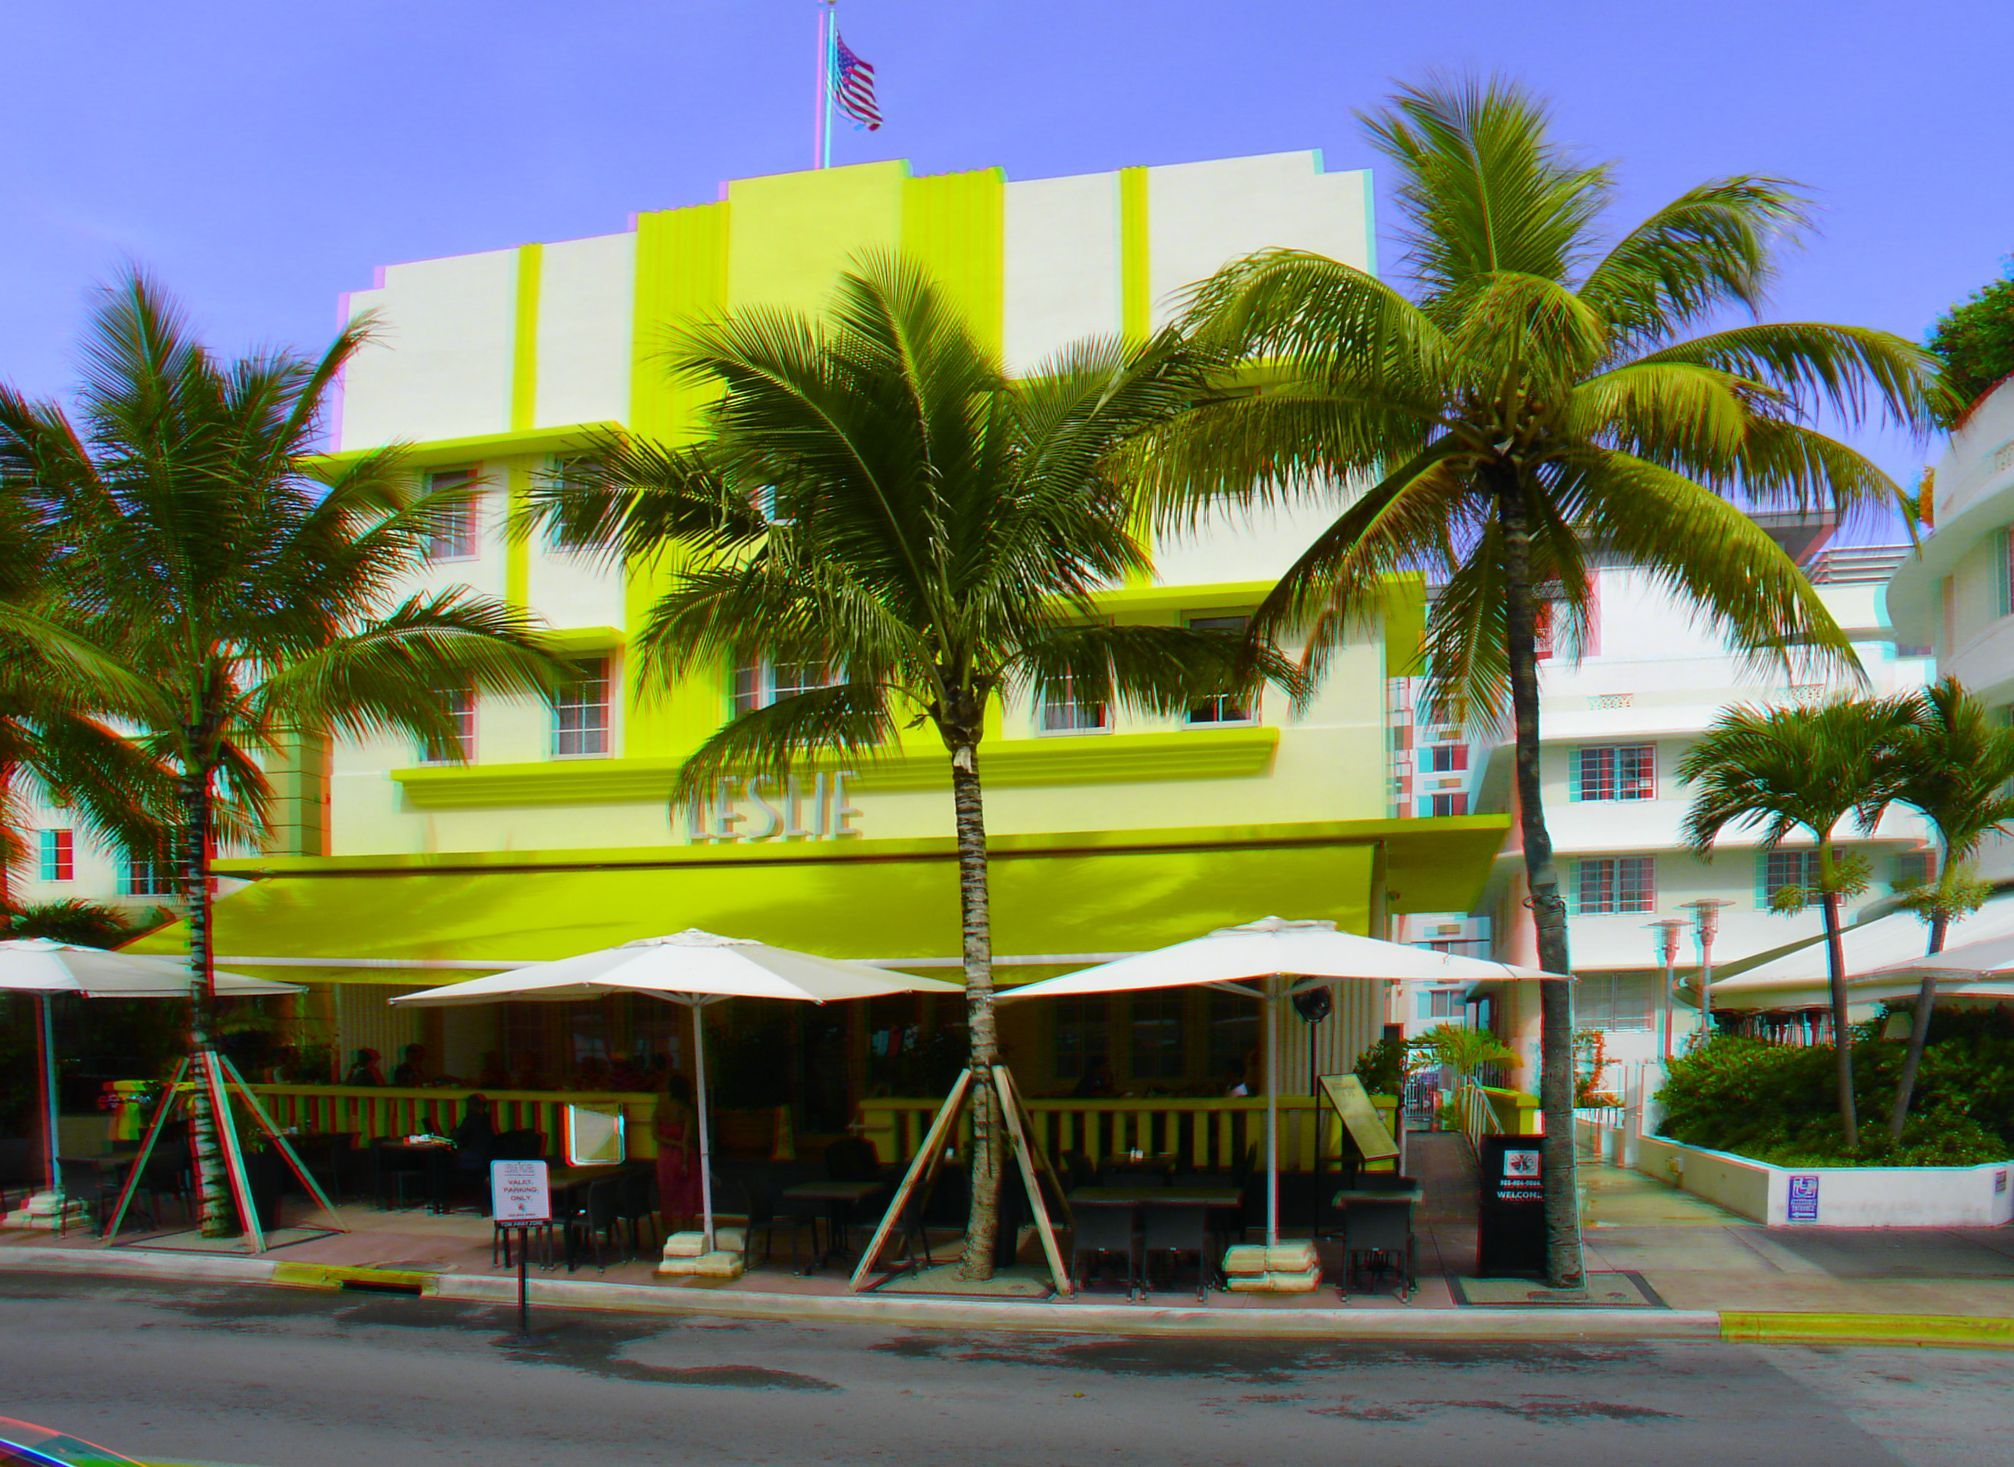 1244 Ocean Drive The Leslie Hotel Built 1937 Architect